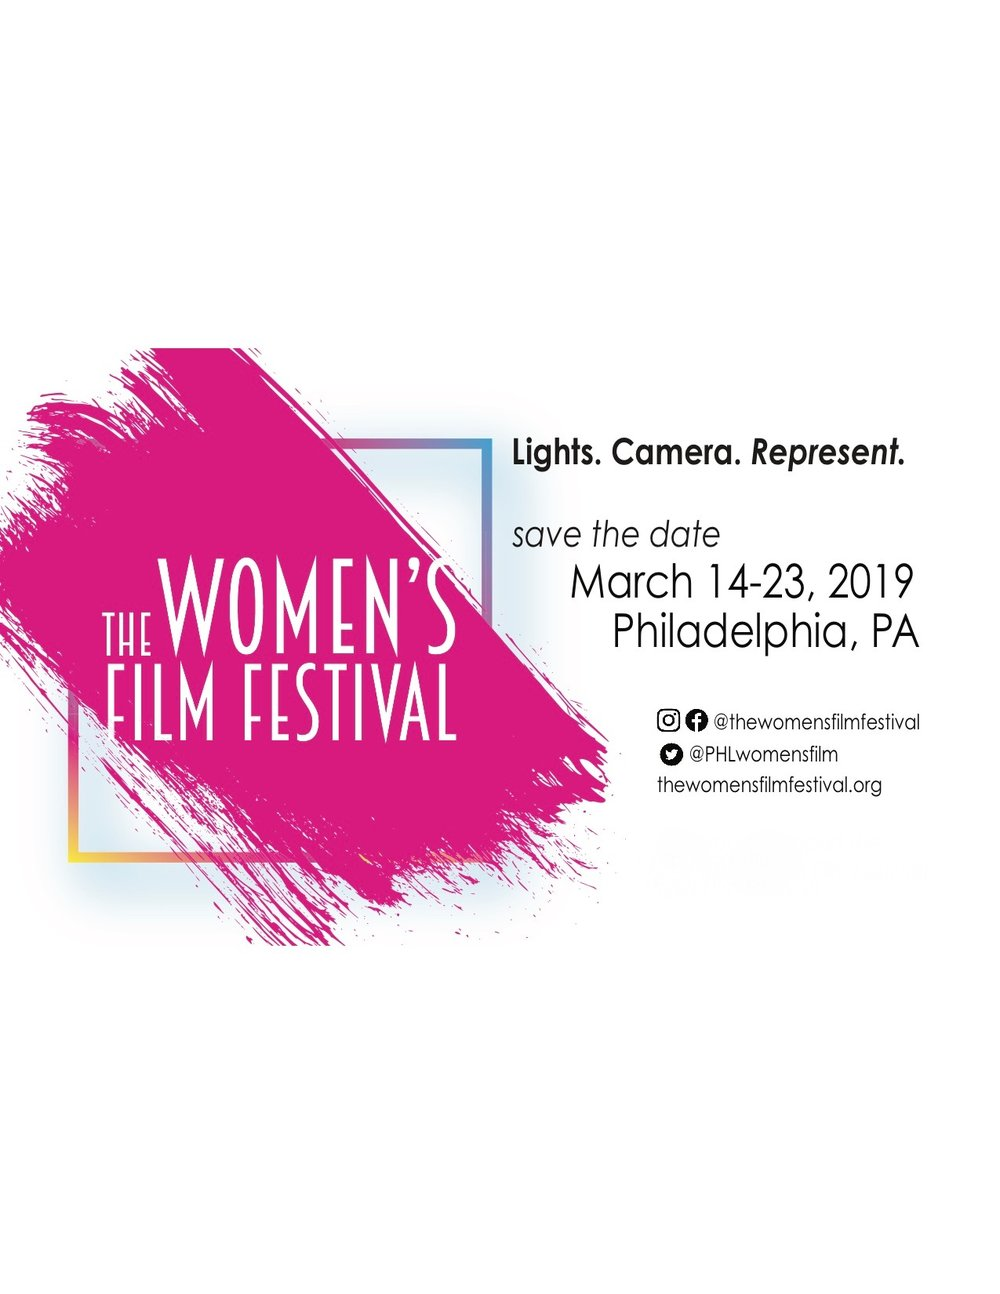 In their fifth year in the making, The Women's Film Festival in Philadelphia has successfully celebrated women in the film and entertainment industry.